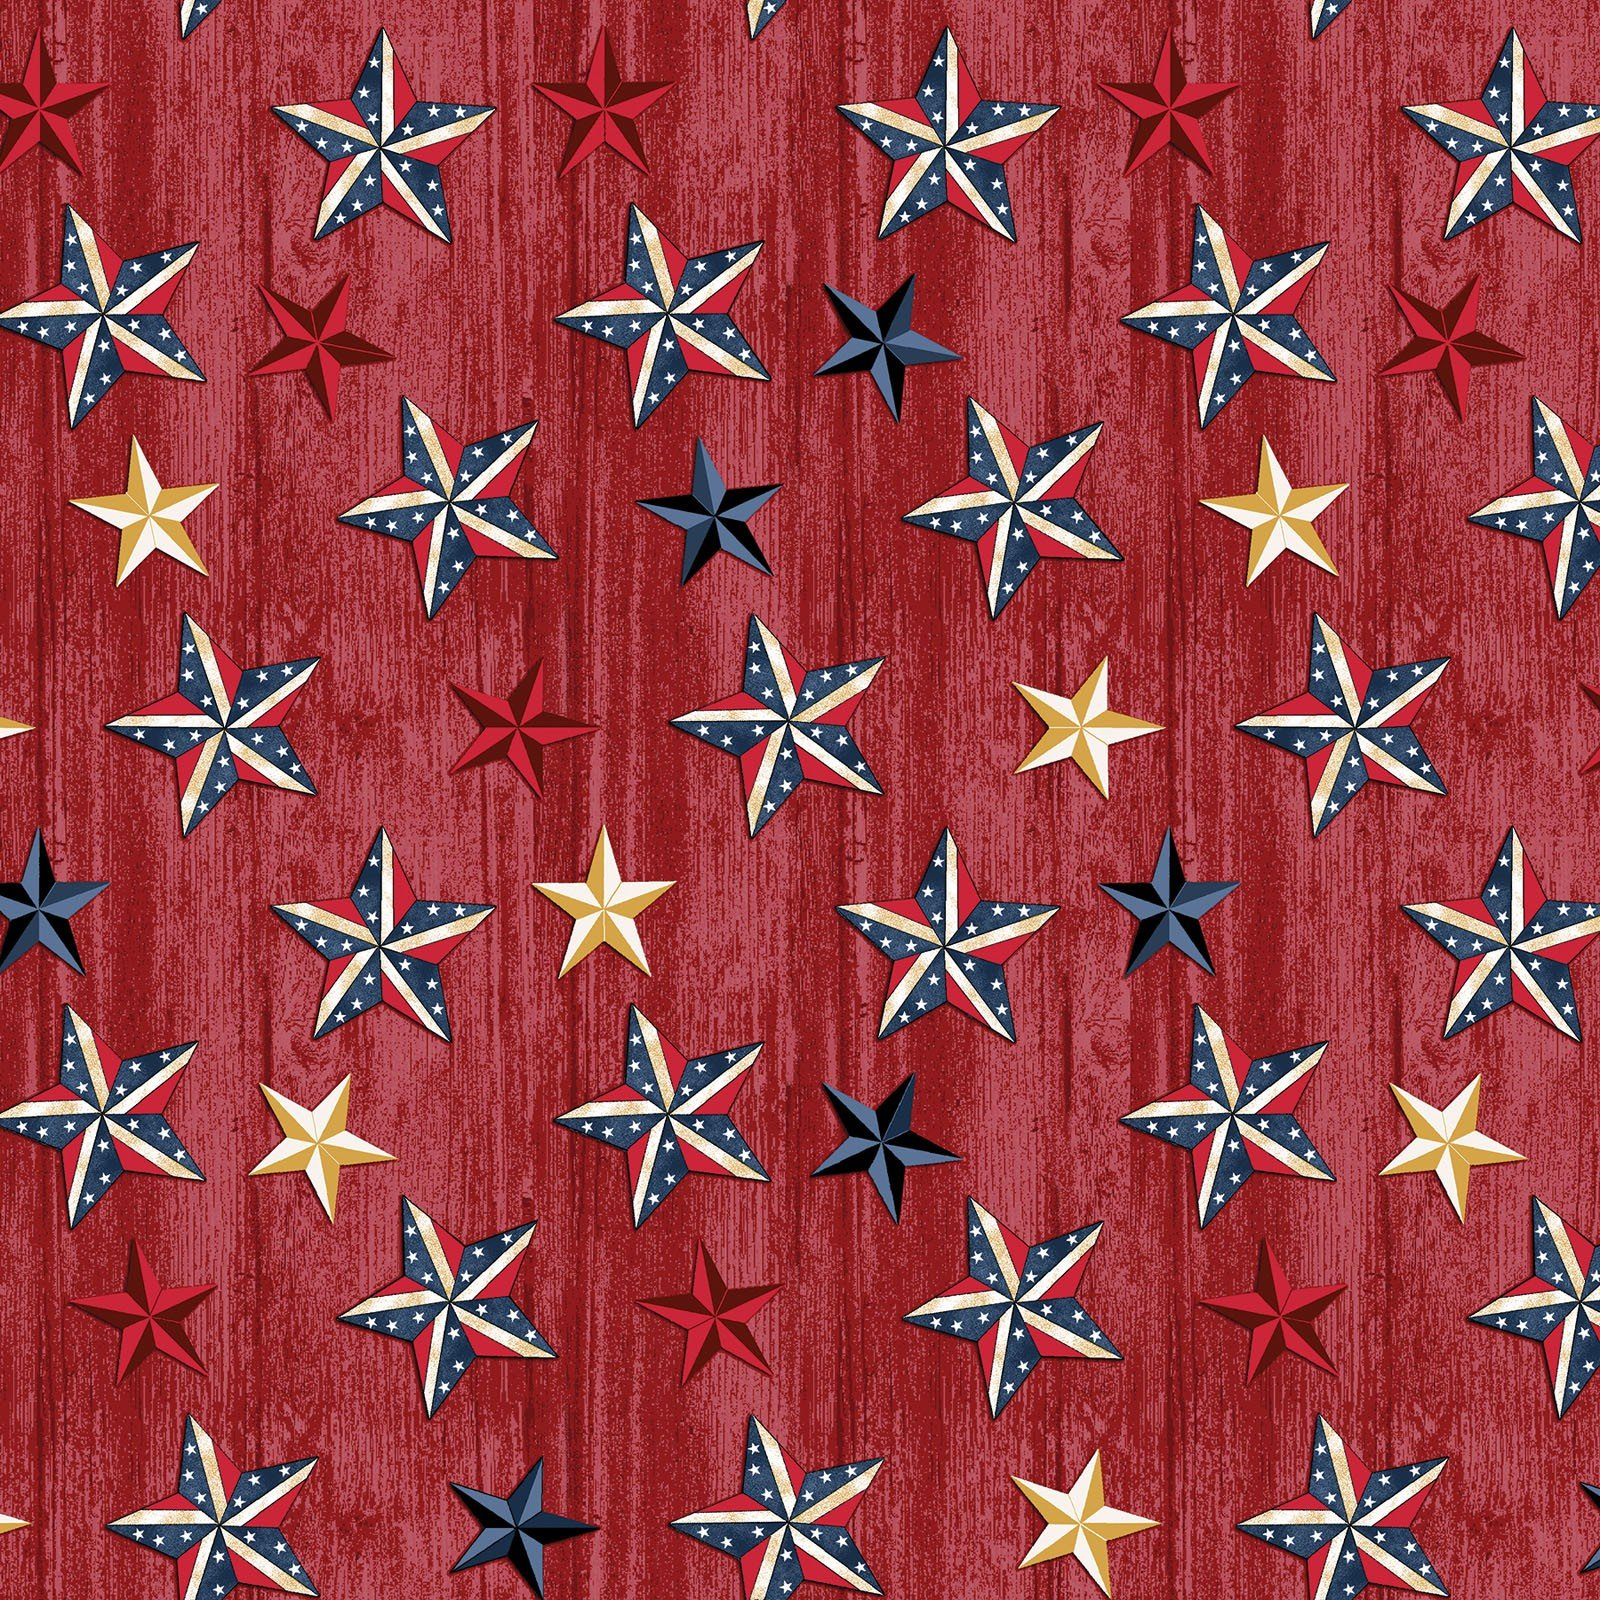 Red Stars on Wood - American Rustic - BEN6333-10